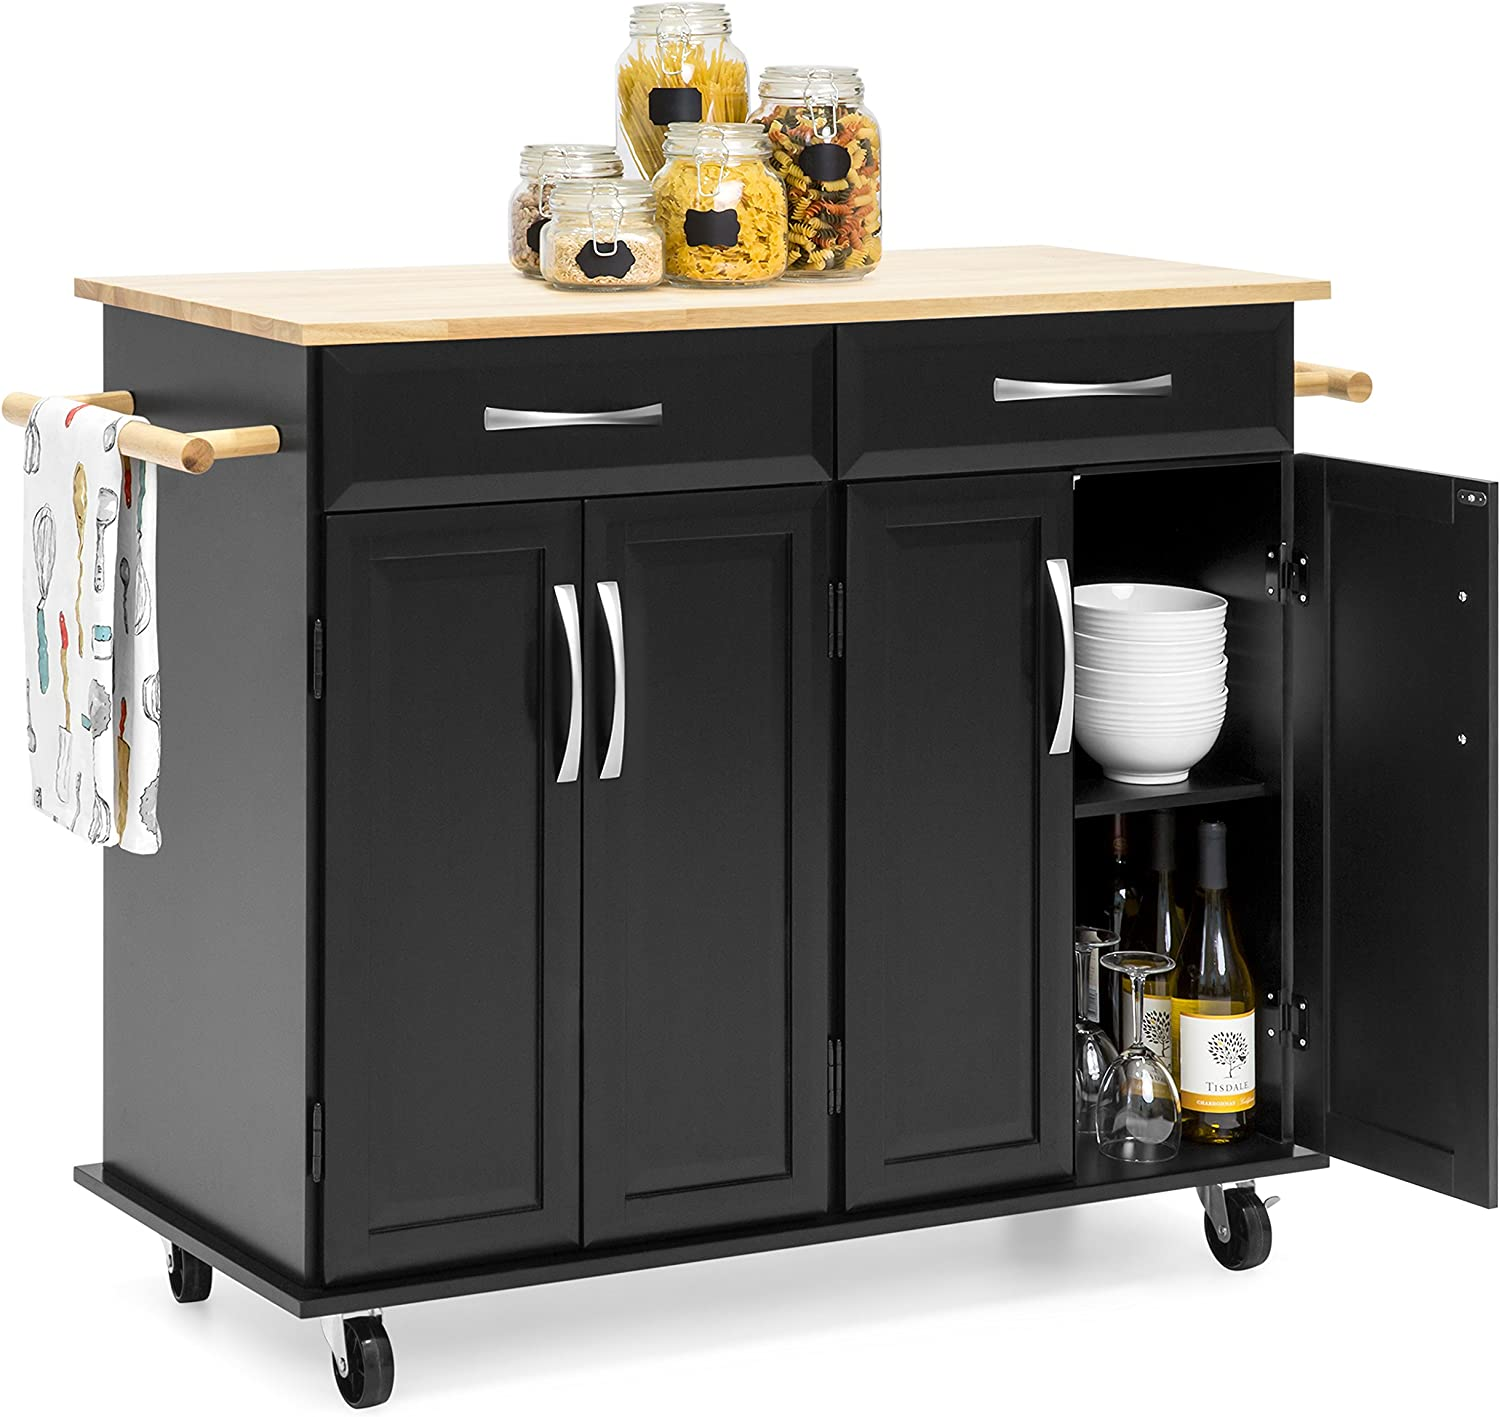 Amazon Com Best Choice Products Portable Kitchen Island Cart For Serving Storage Décor W Wood Top 2 Towel Racks Drawers Cabinets Adjustable Shelves Black Kitchen Islands Carts